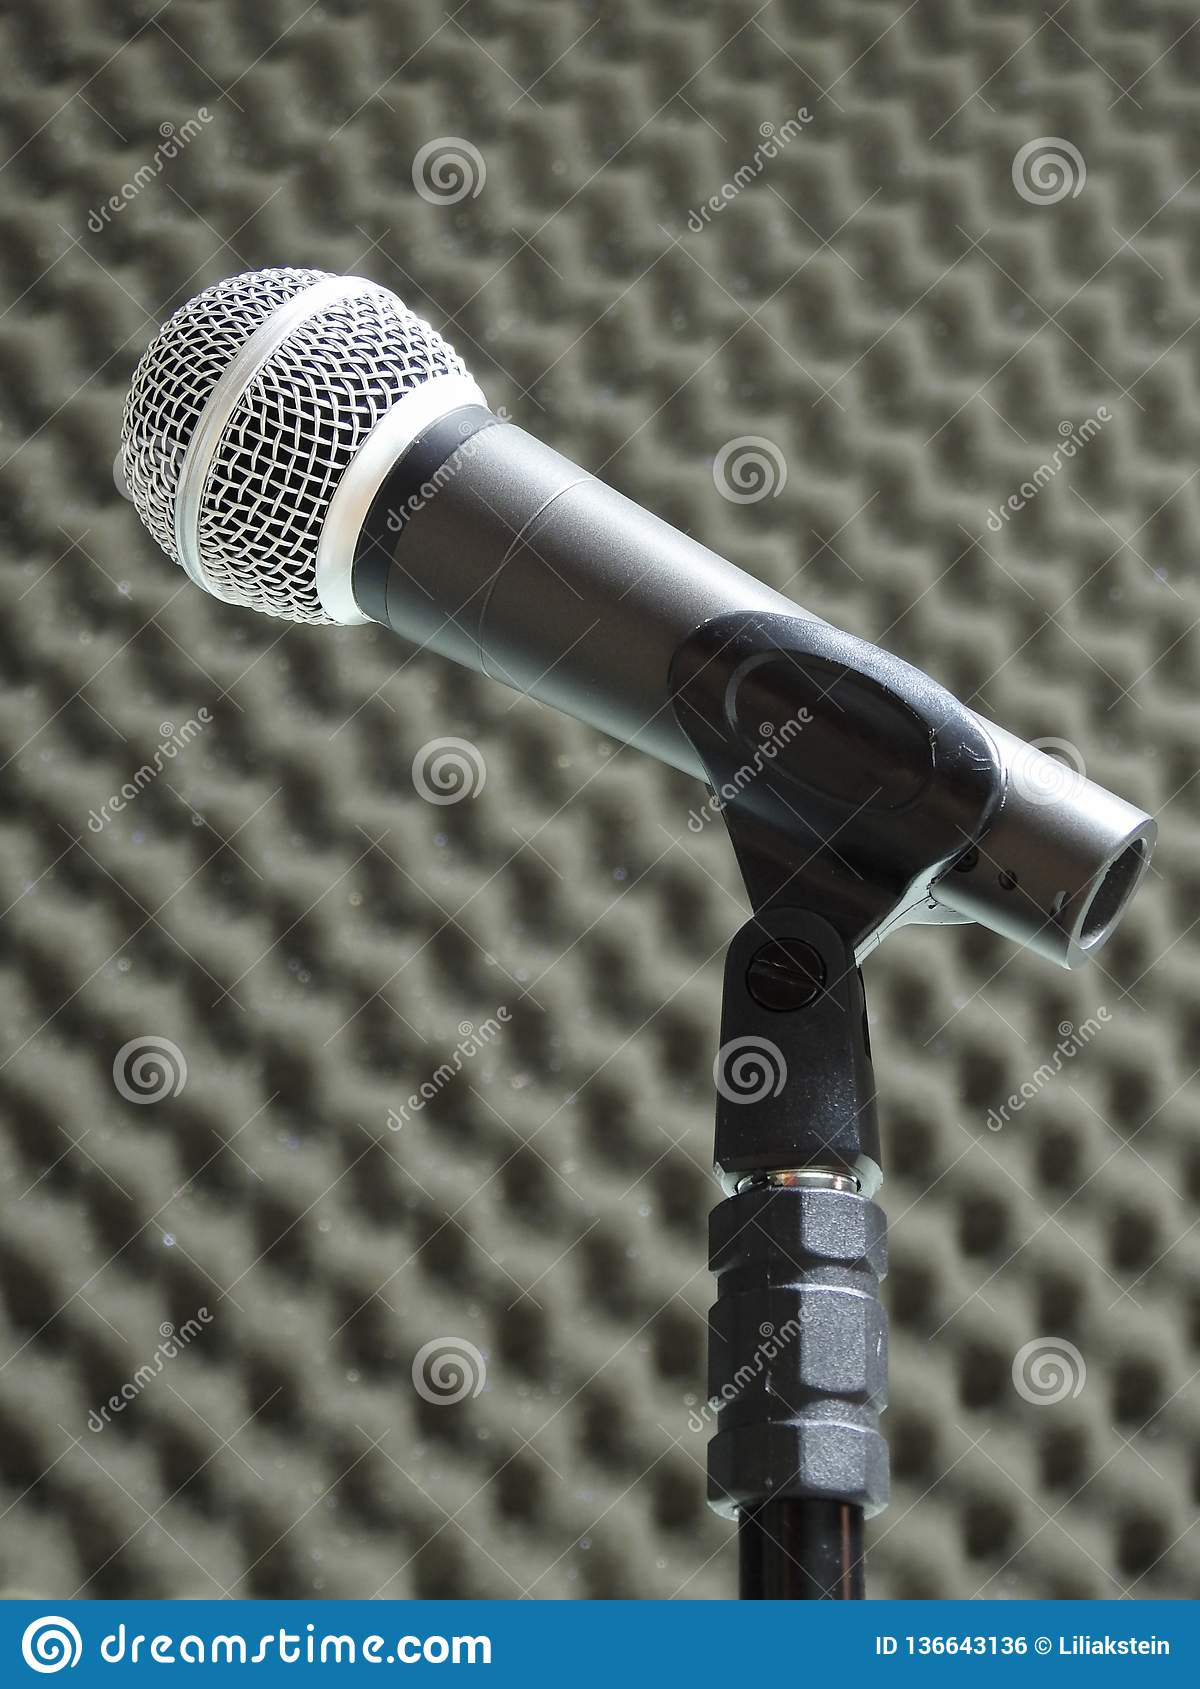 Close-up of a dynamic vocal microphone. Blurred background of acoustic foam.